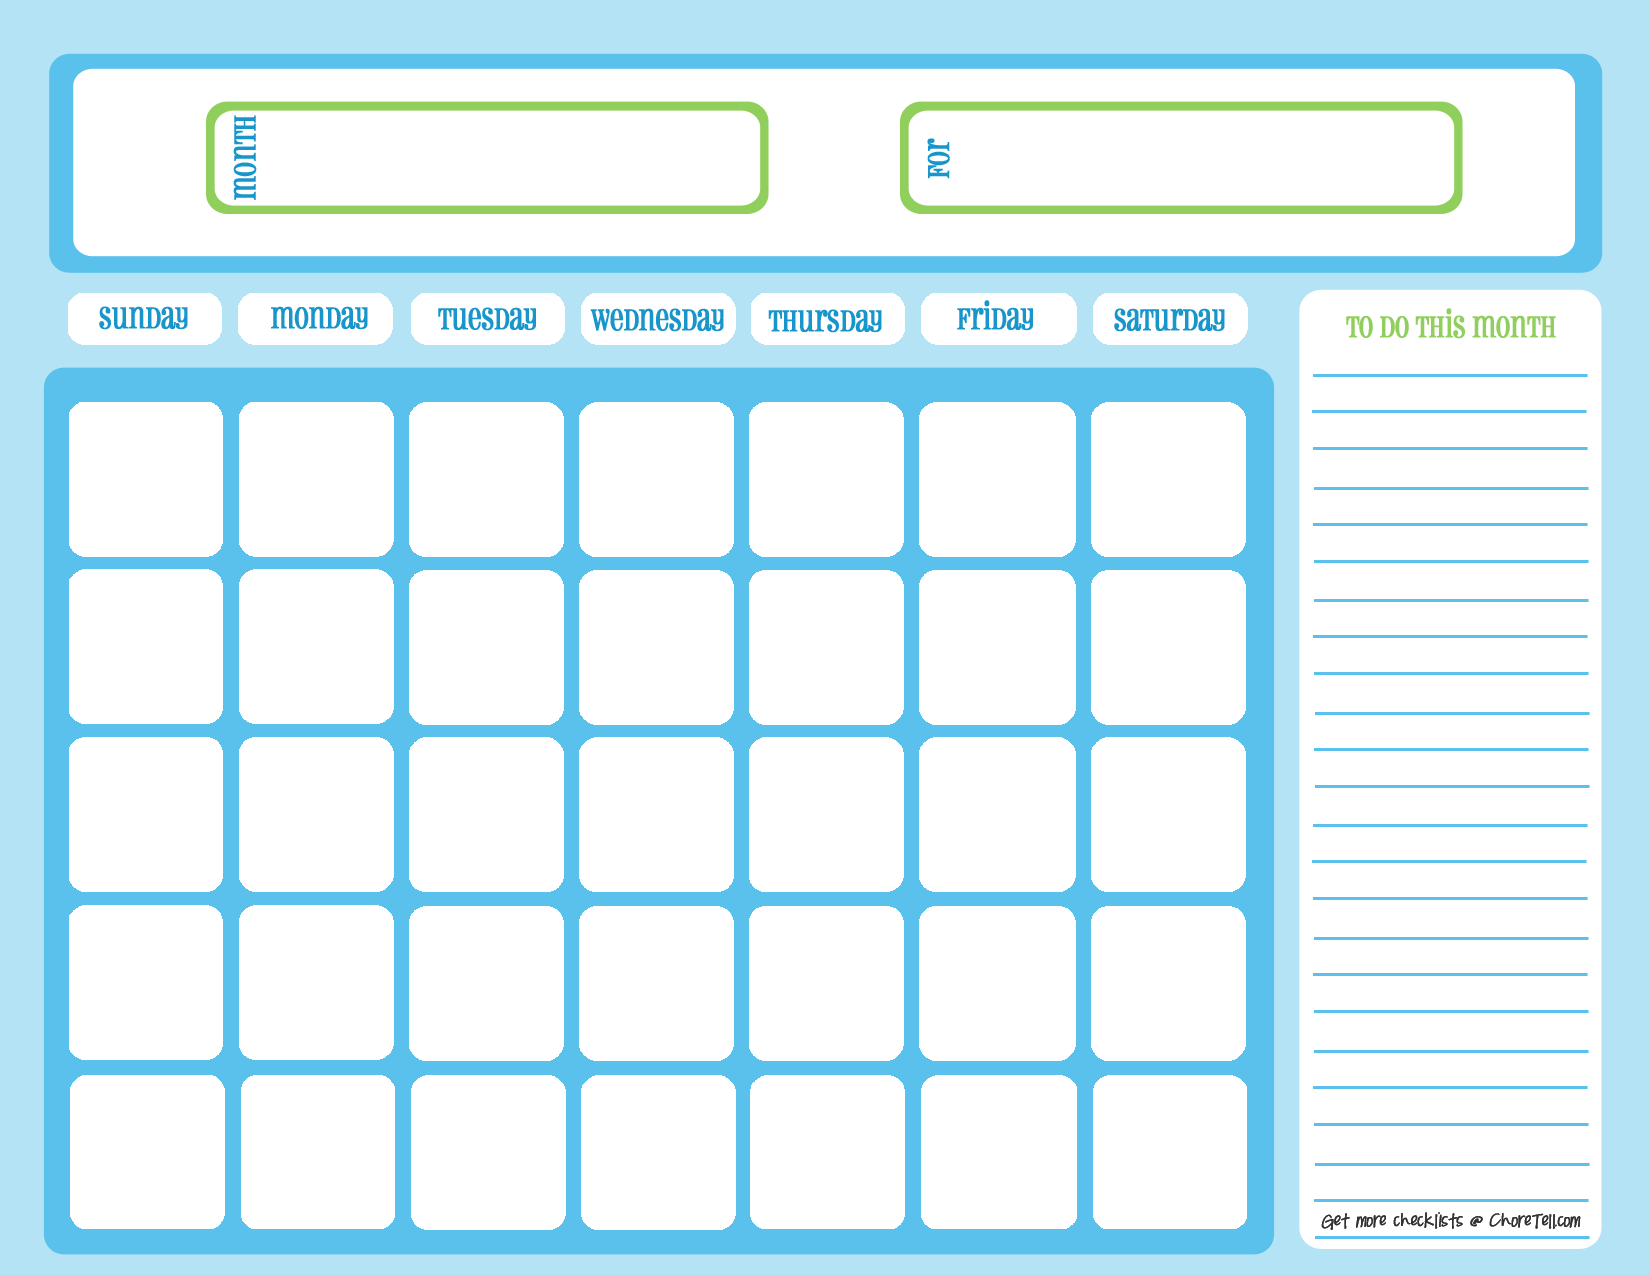 Blank chore calendar, blue on light blue | Free printable ...